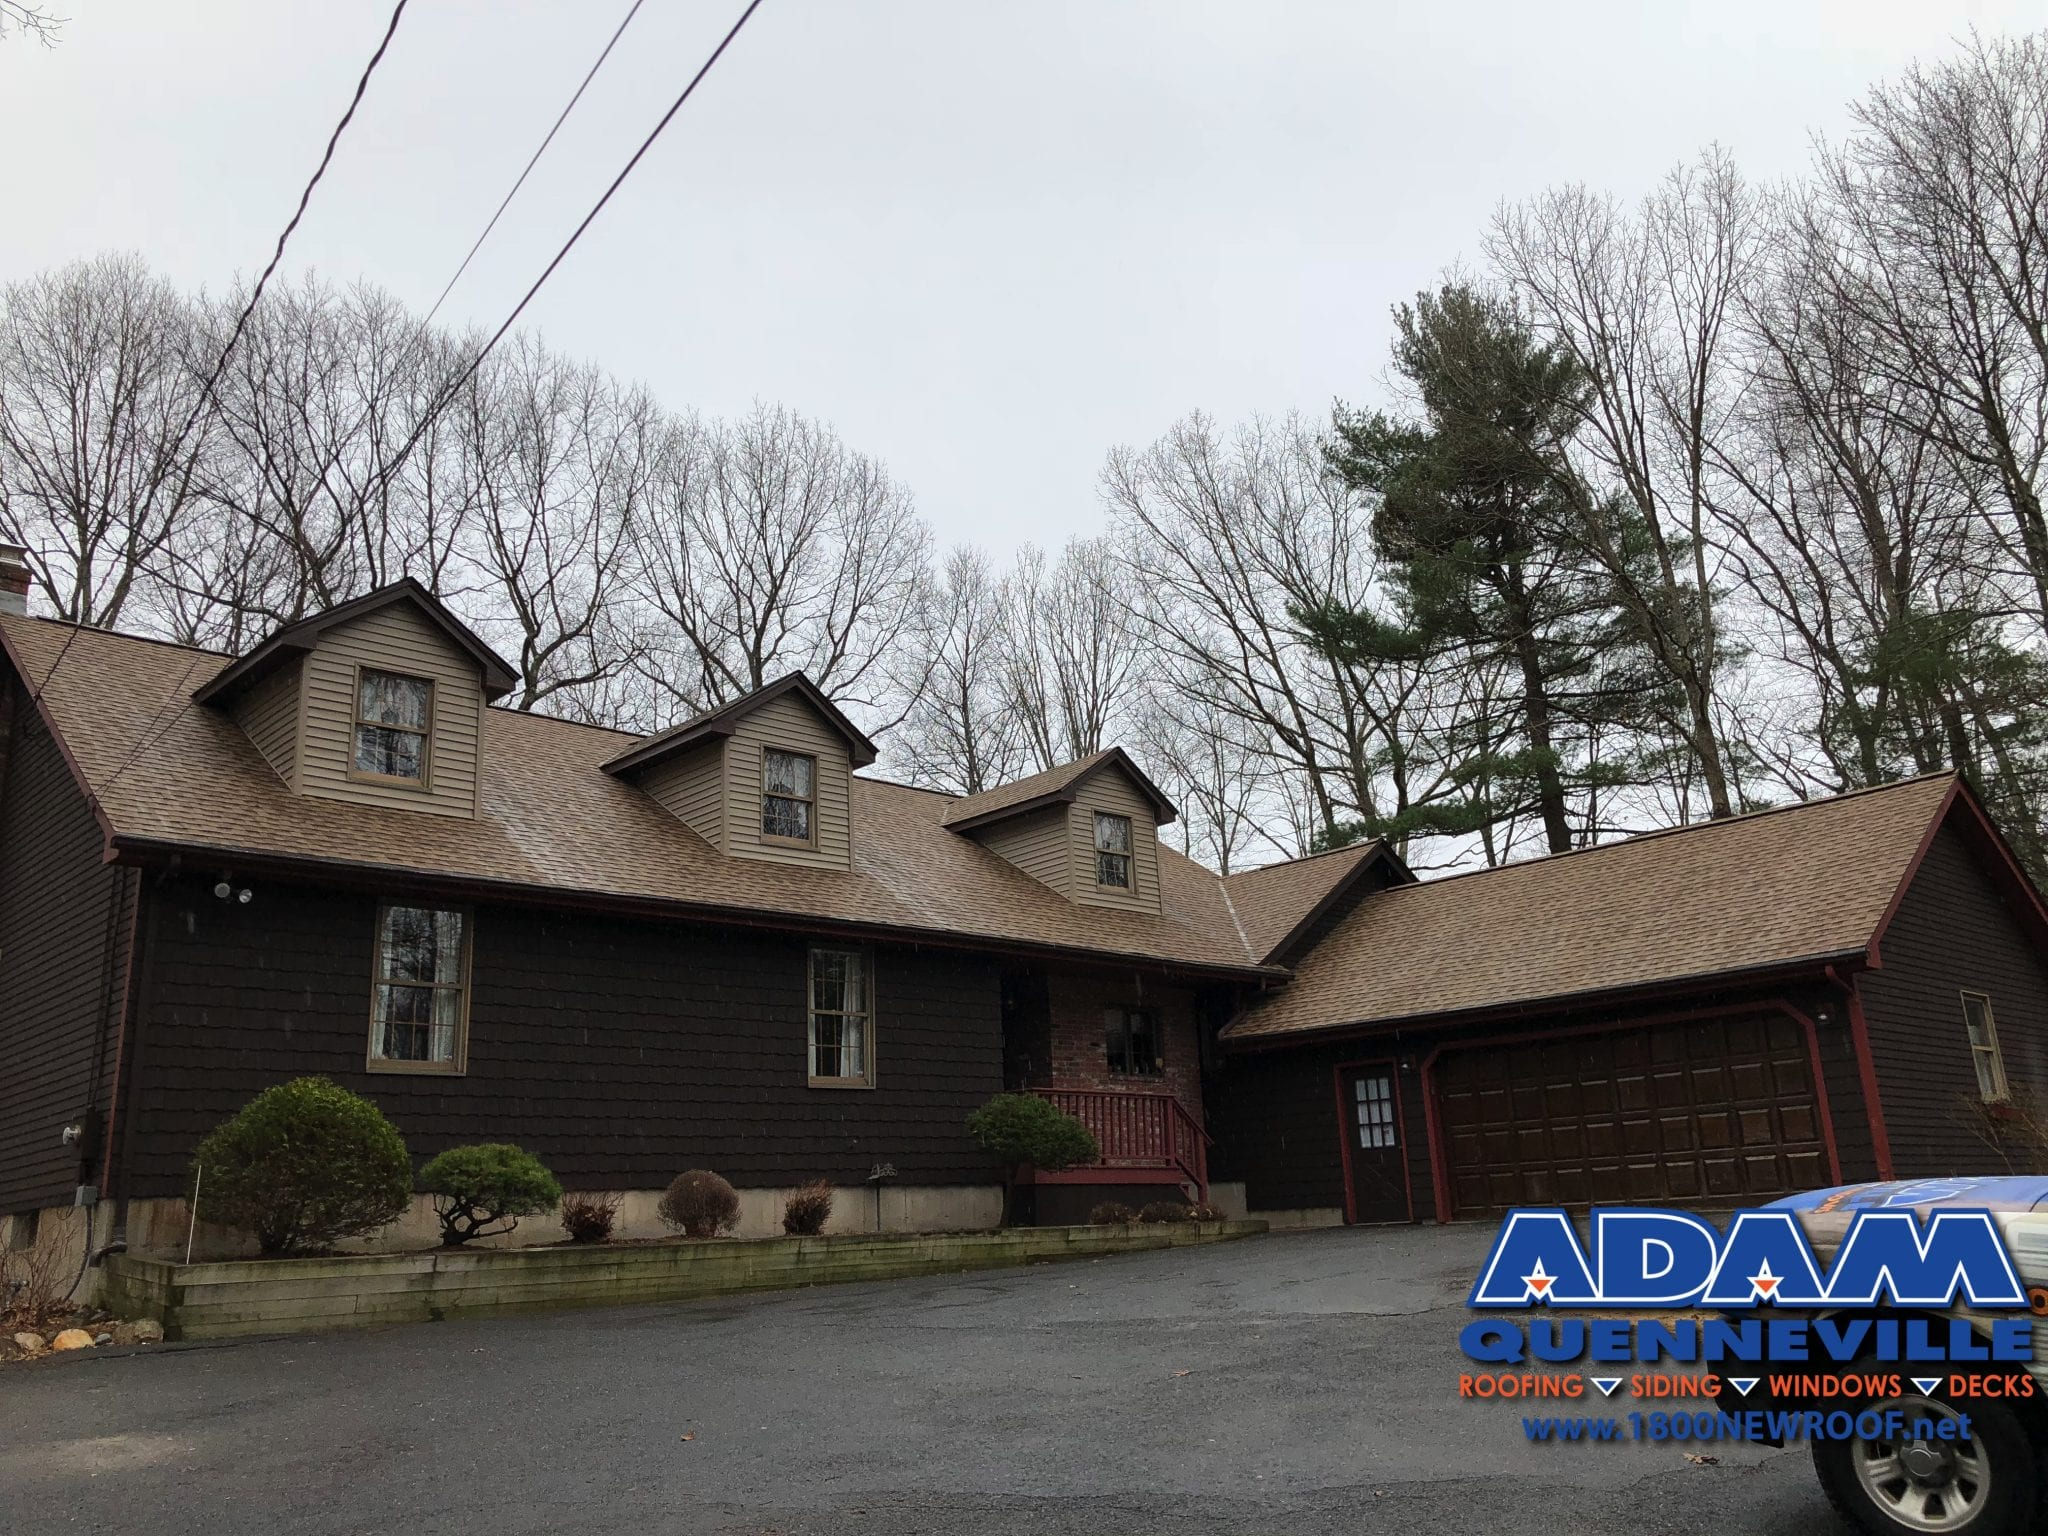 This is a photo of a completed roofing and riding replacement project with brown shingles.